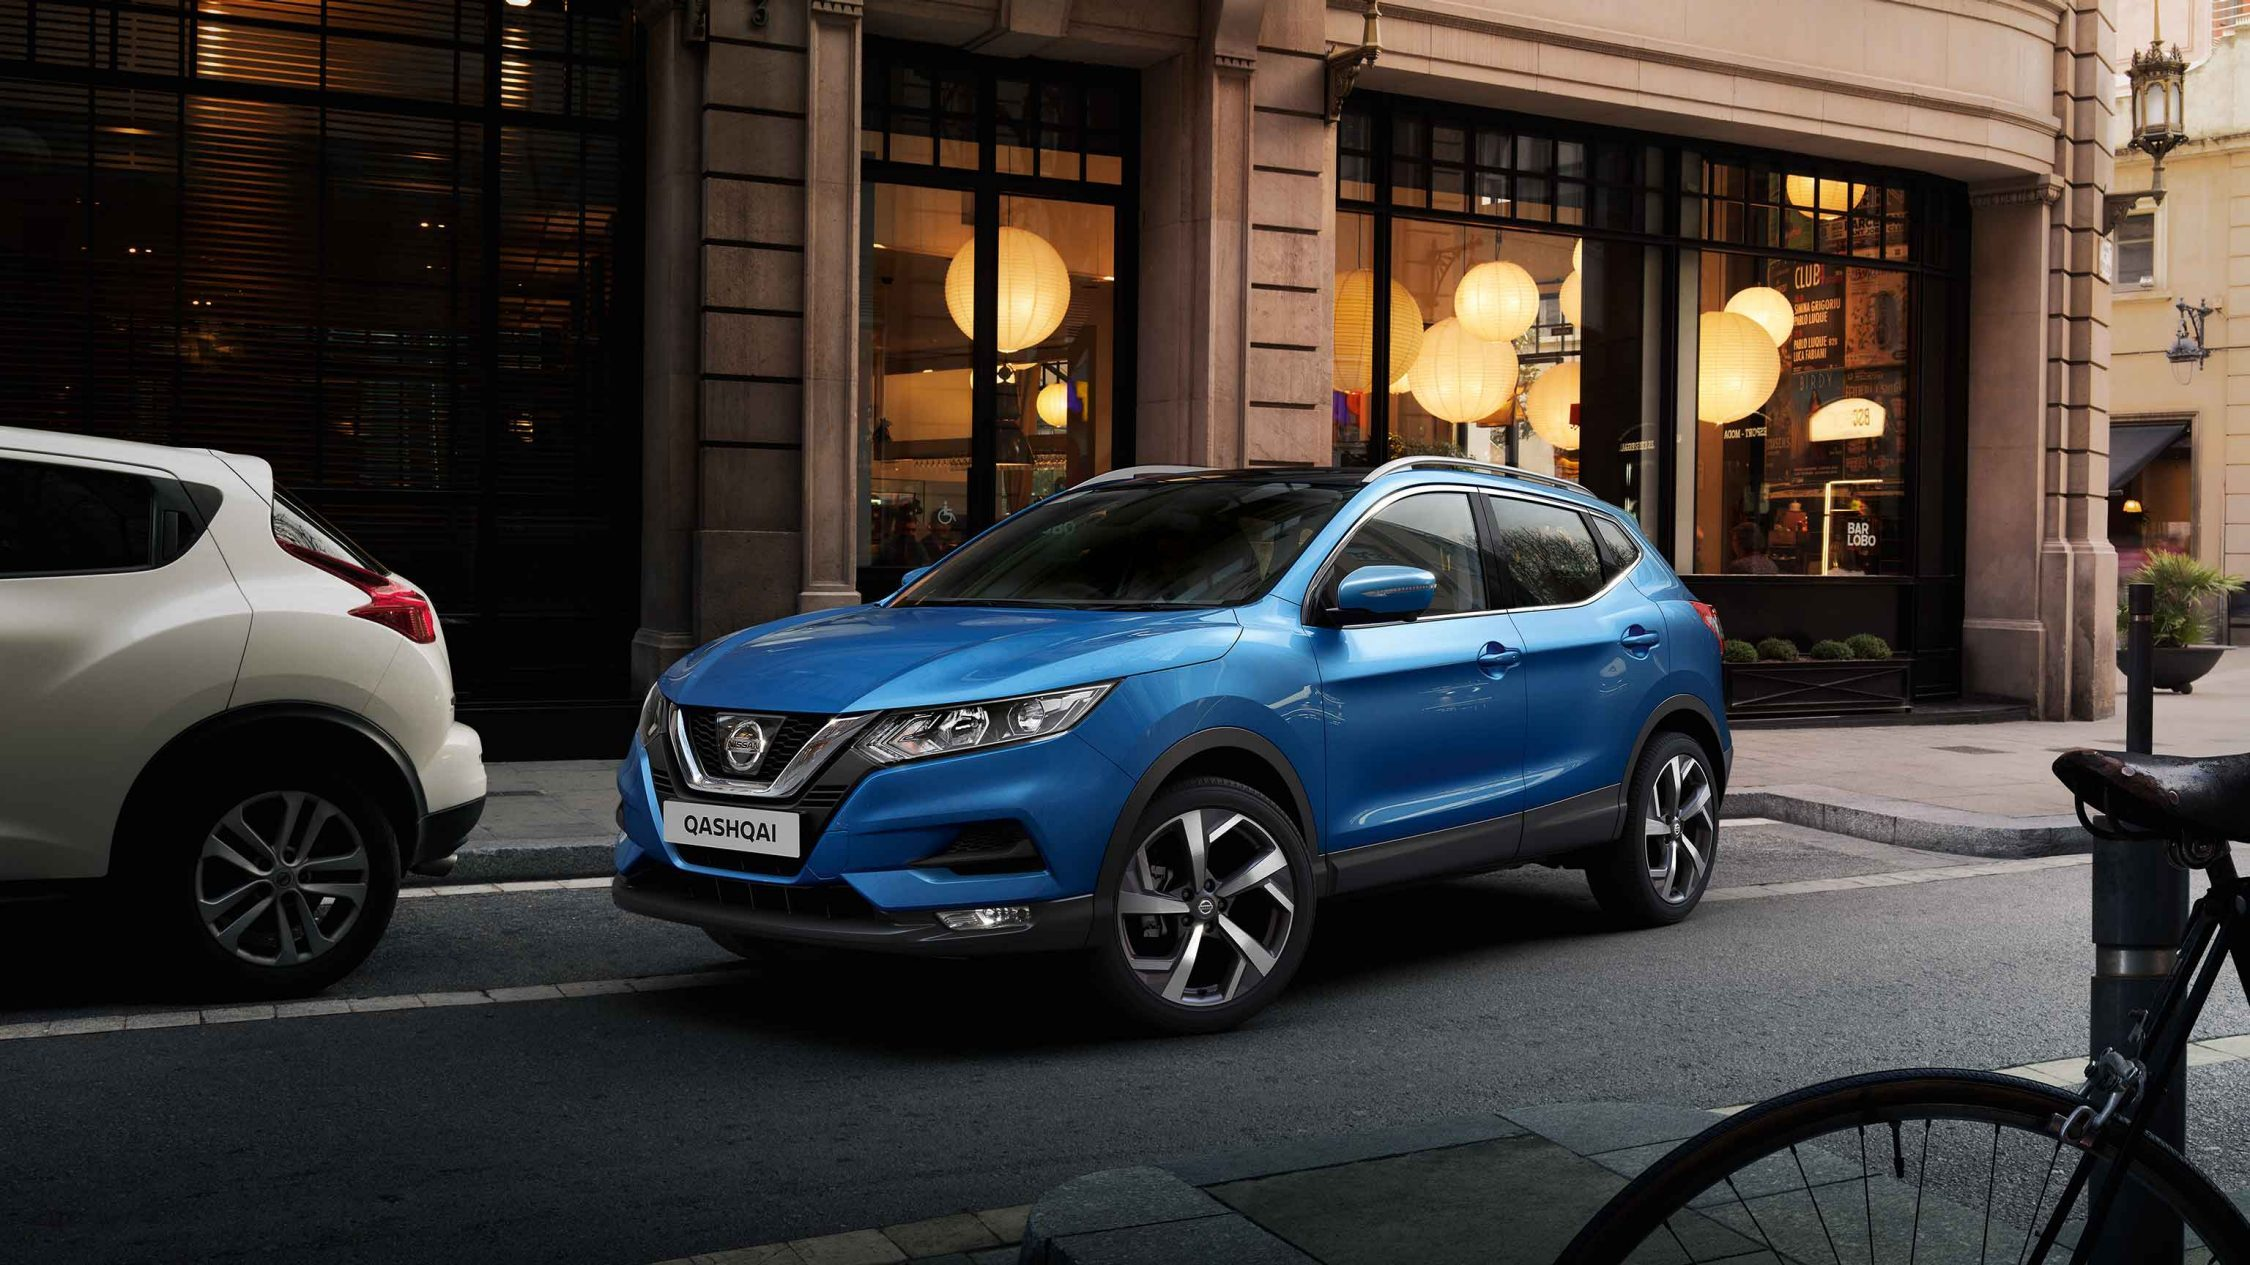 Qashqai 3/4 front in the street